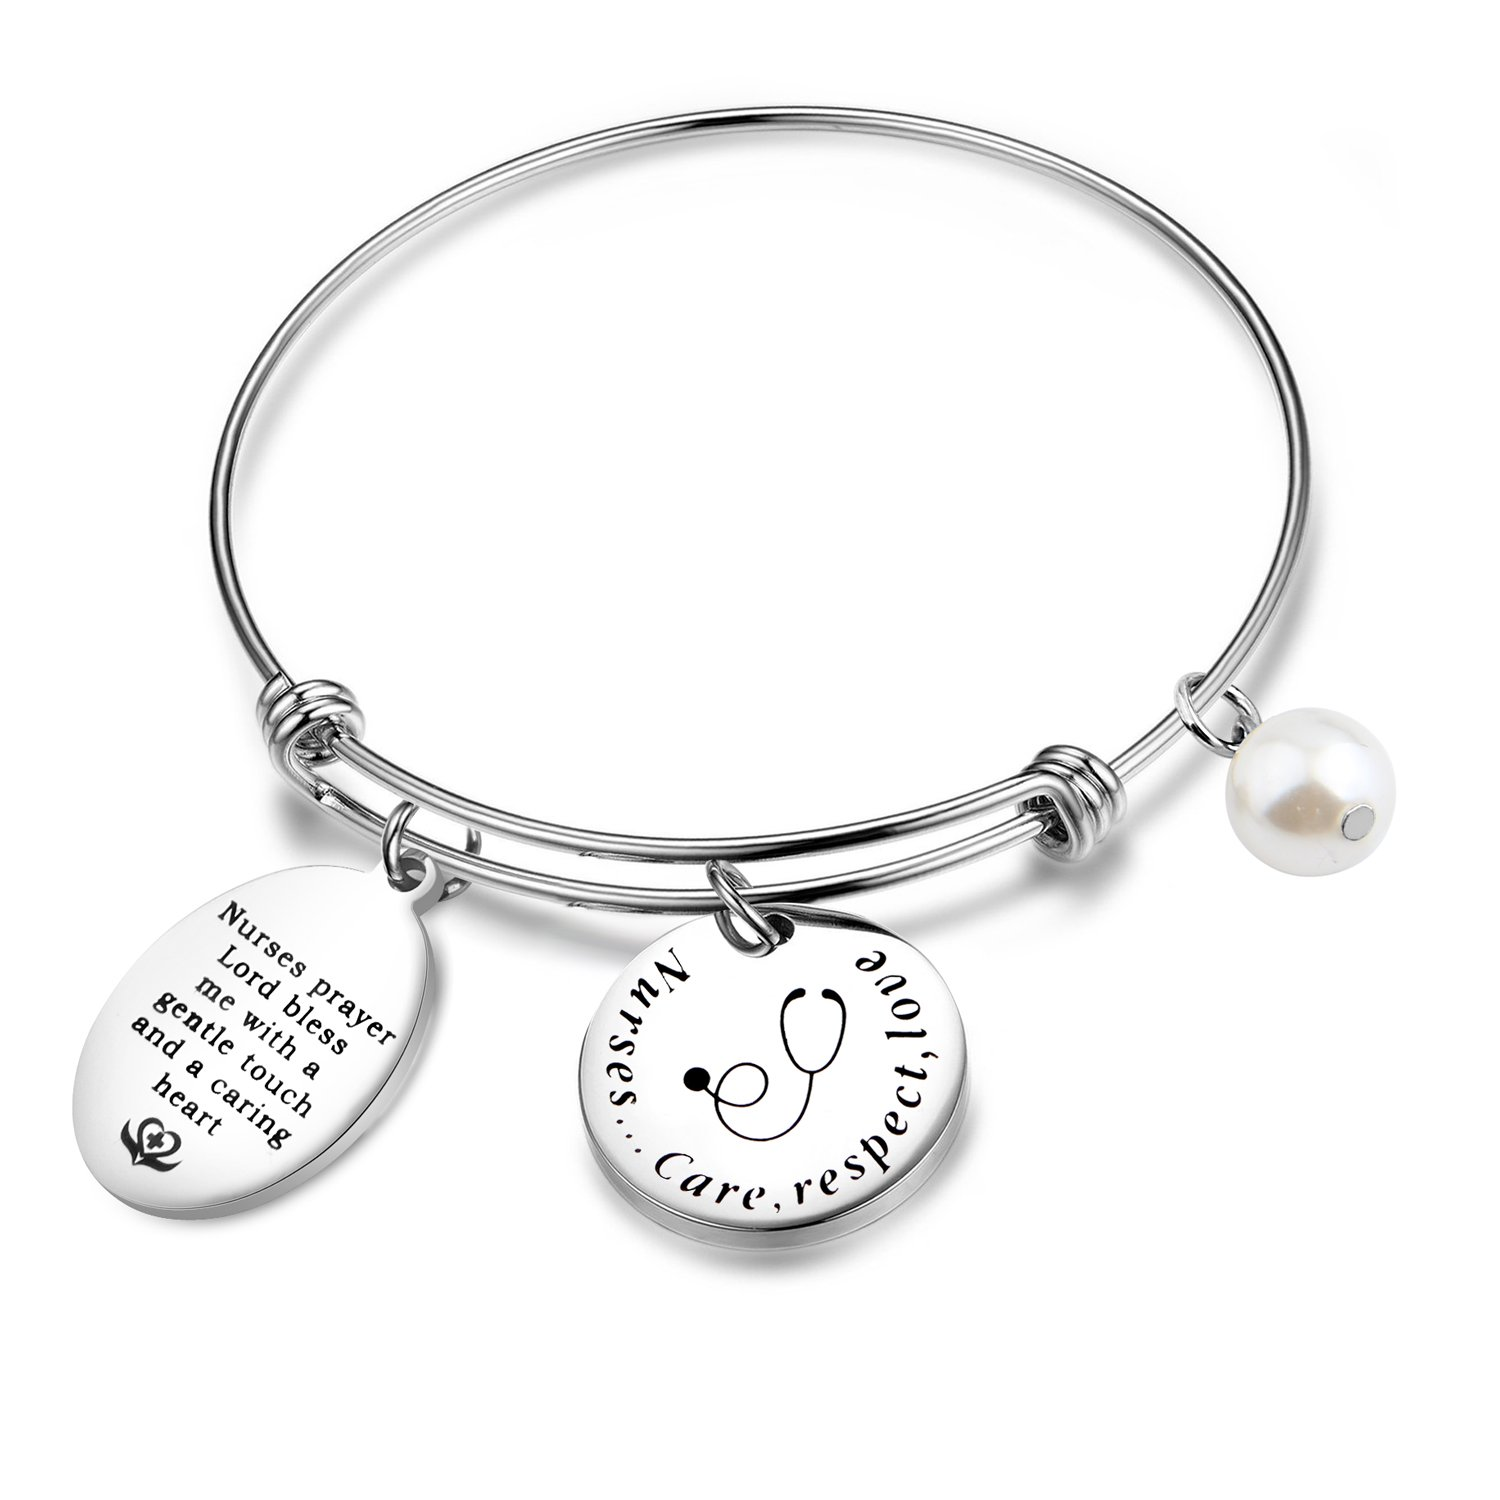 MAOFAED Nurse Necklace,Nurse Prayer Bracelet,RN Charms, Nurse Prayer Pendant Necklace,Nurse Jewelry MAOFAED Nurse Necklace Nurse Prayer Bracelet RN Charms MF-17NE0405-A